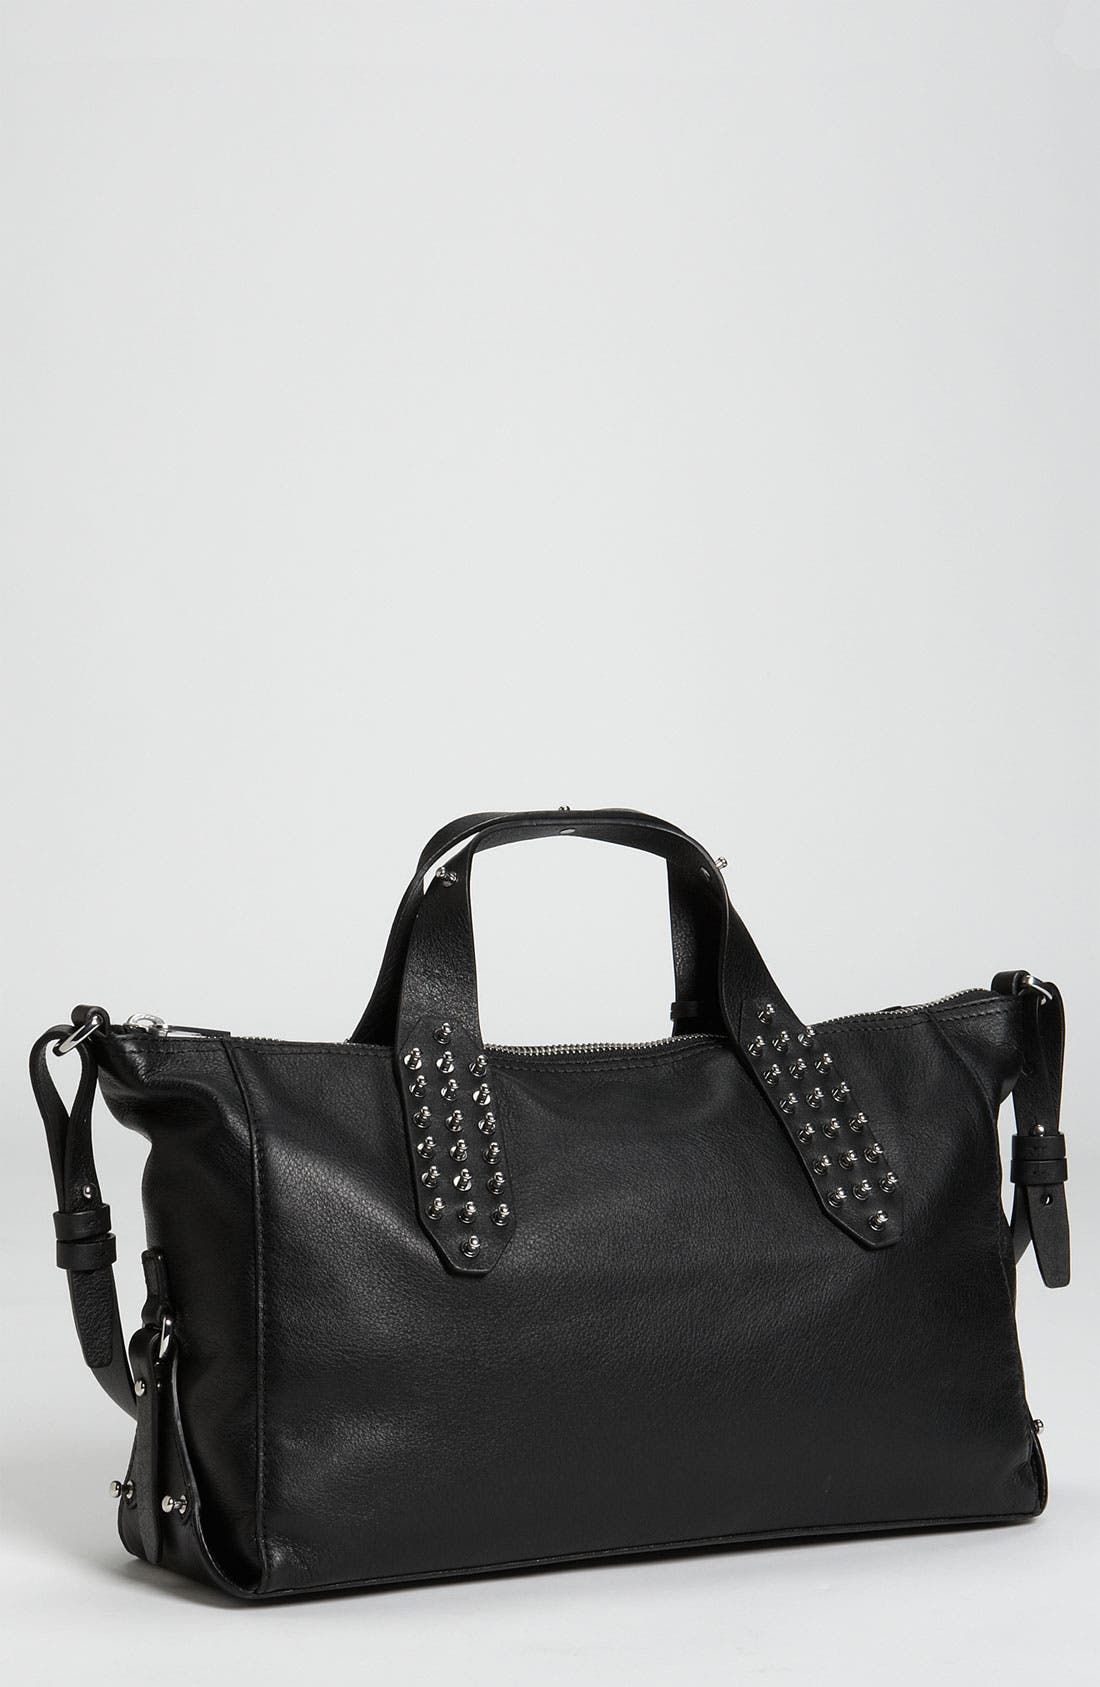 Alternate Image 1 Selected - McQ by Alexander McQueen 'Stratford' Satchel